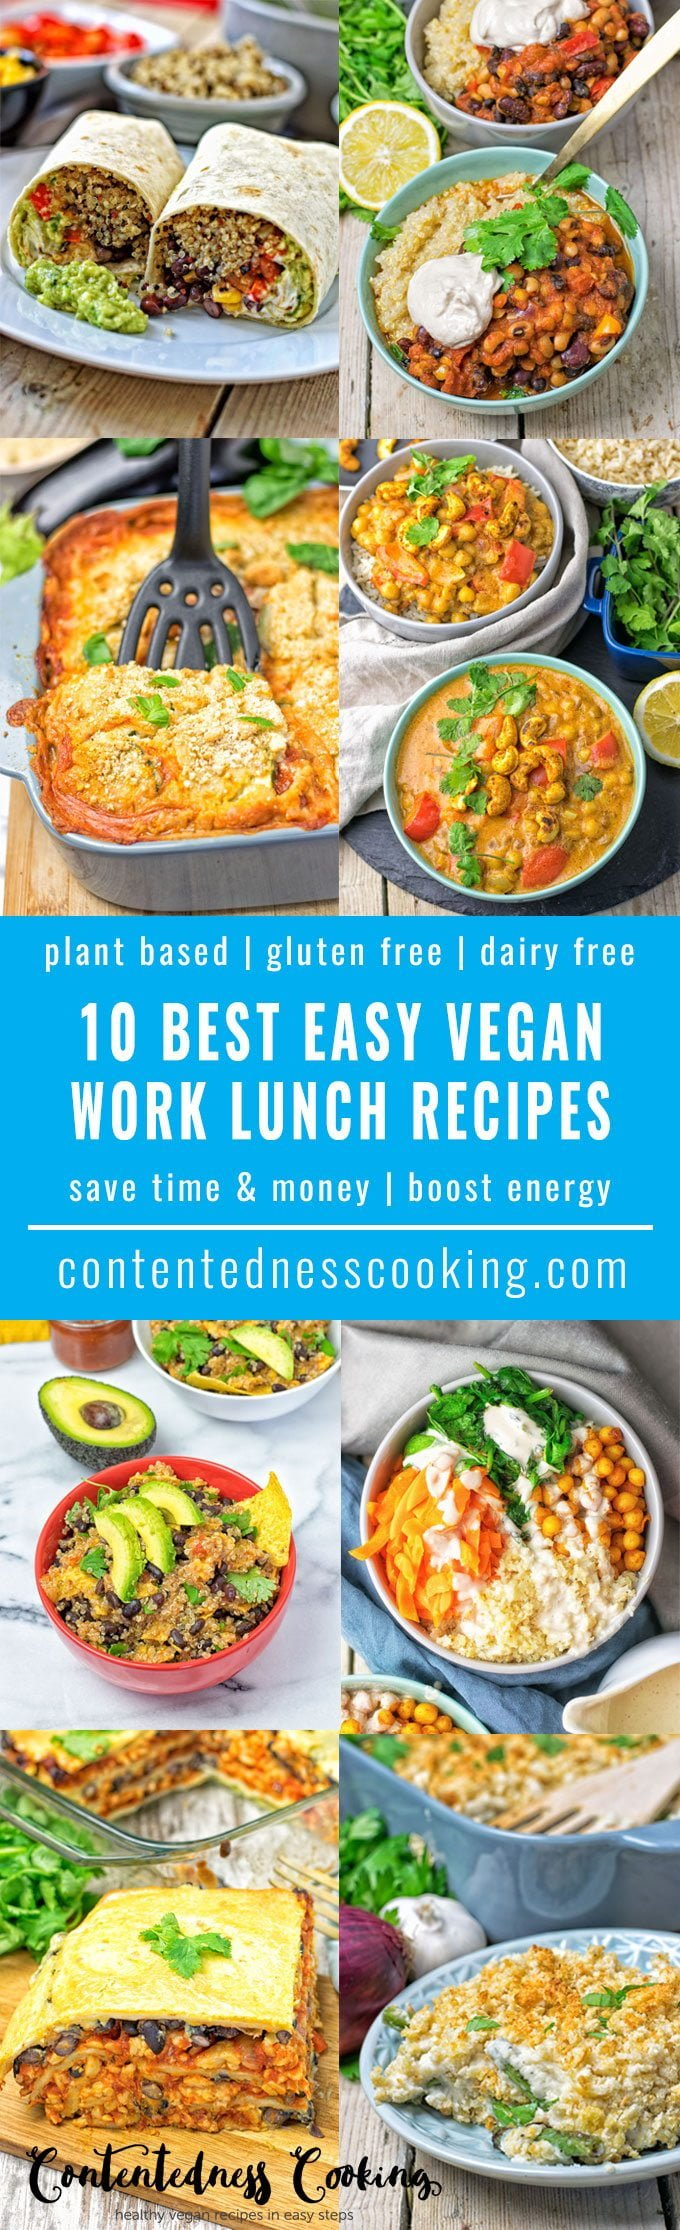 10 Best Easy Vegan Work Lunch Recipes Contentedness Cooking